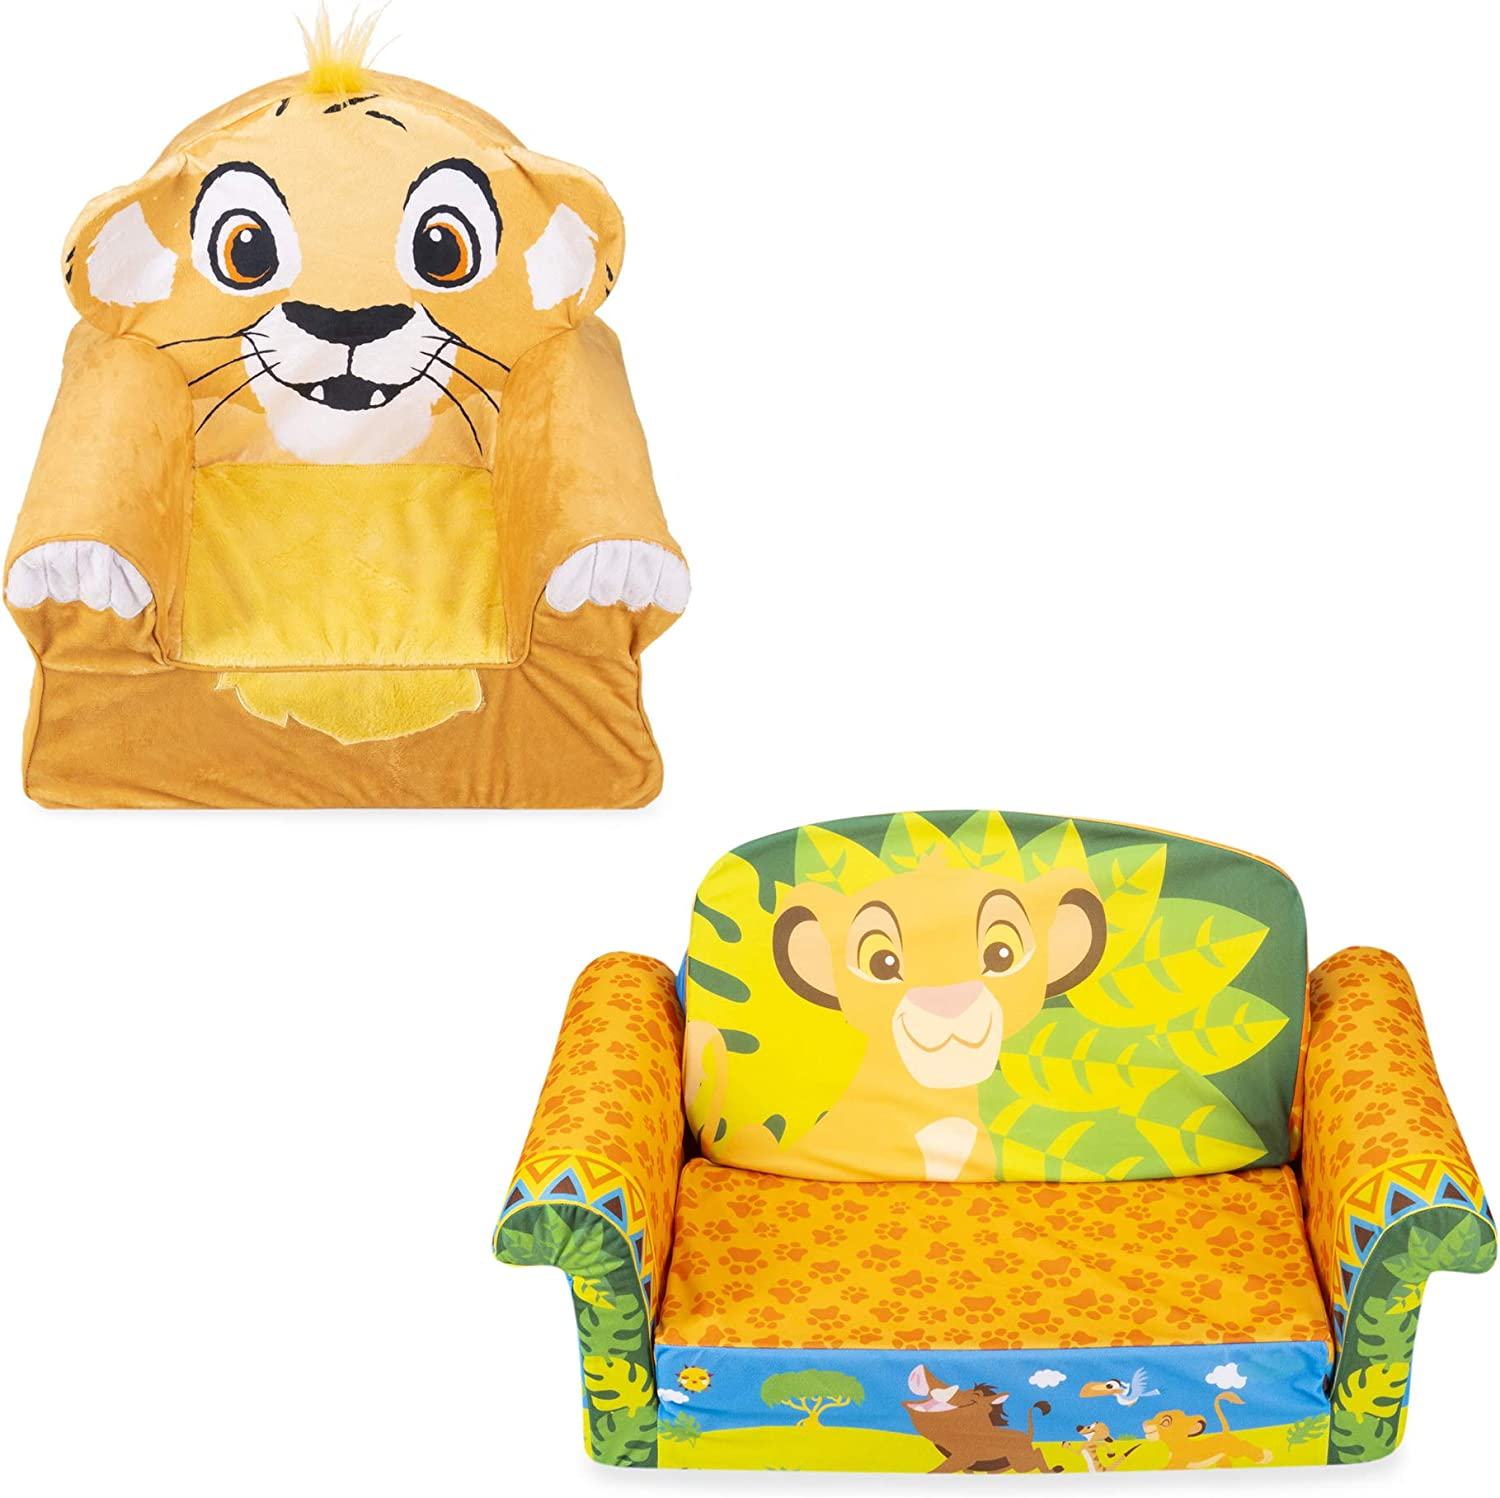 Marshmallow Furniture Comfy Foam Toddler 2-in-1 Flip-Open Couch and Chair Kids Furniture Package for Ages 2 Years Old and Up, Disney Lion King